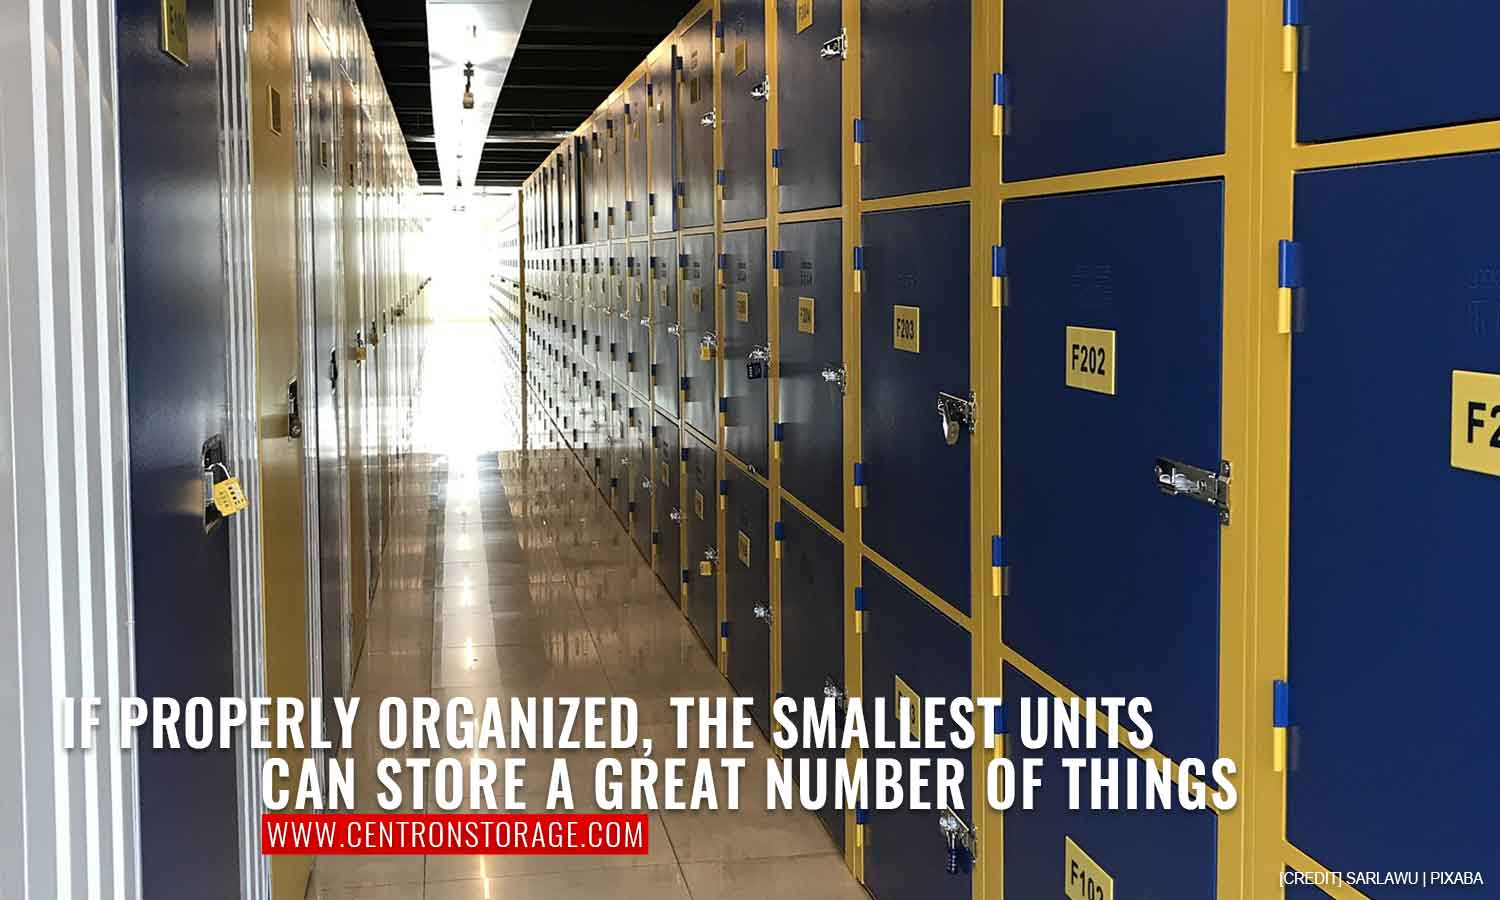 If properly organized, the smallest units can store a great number of things